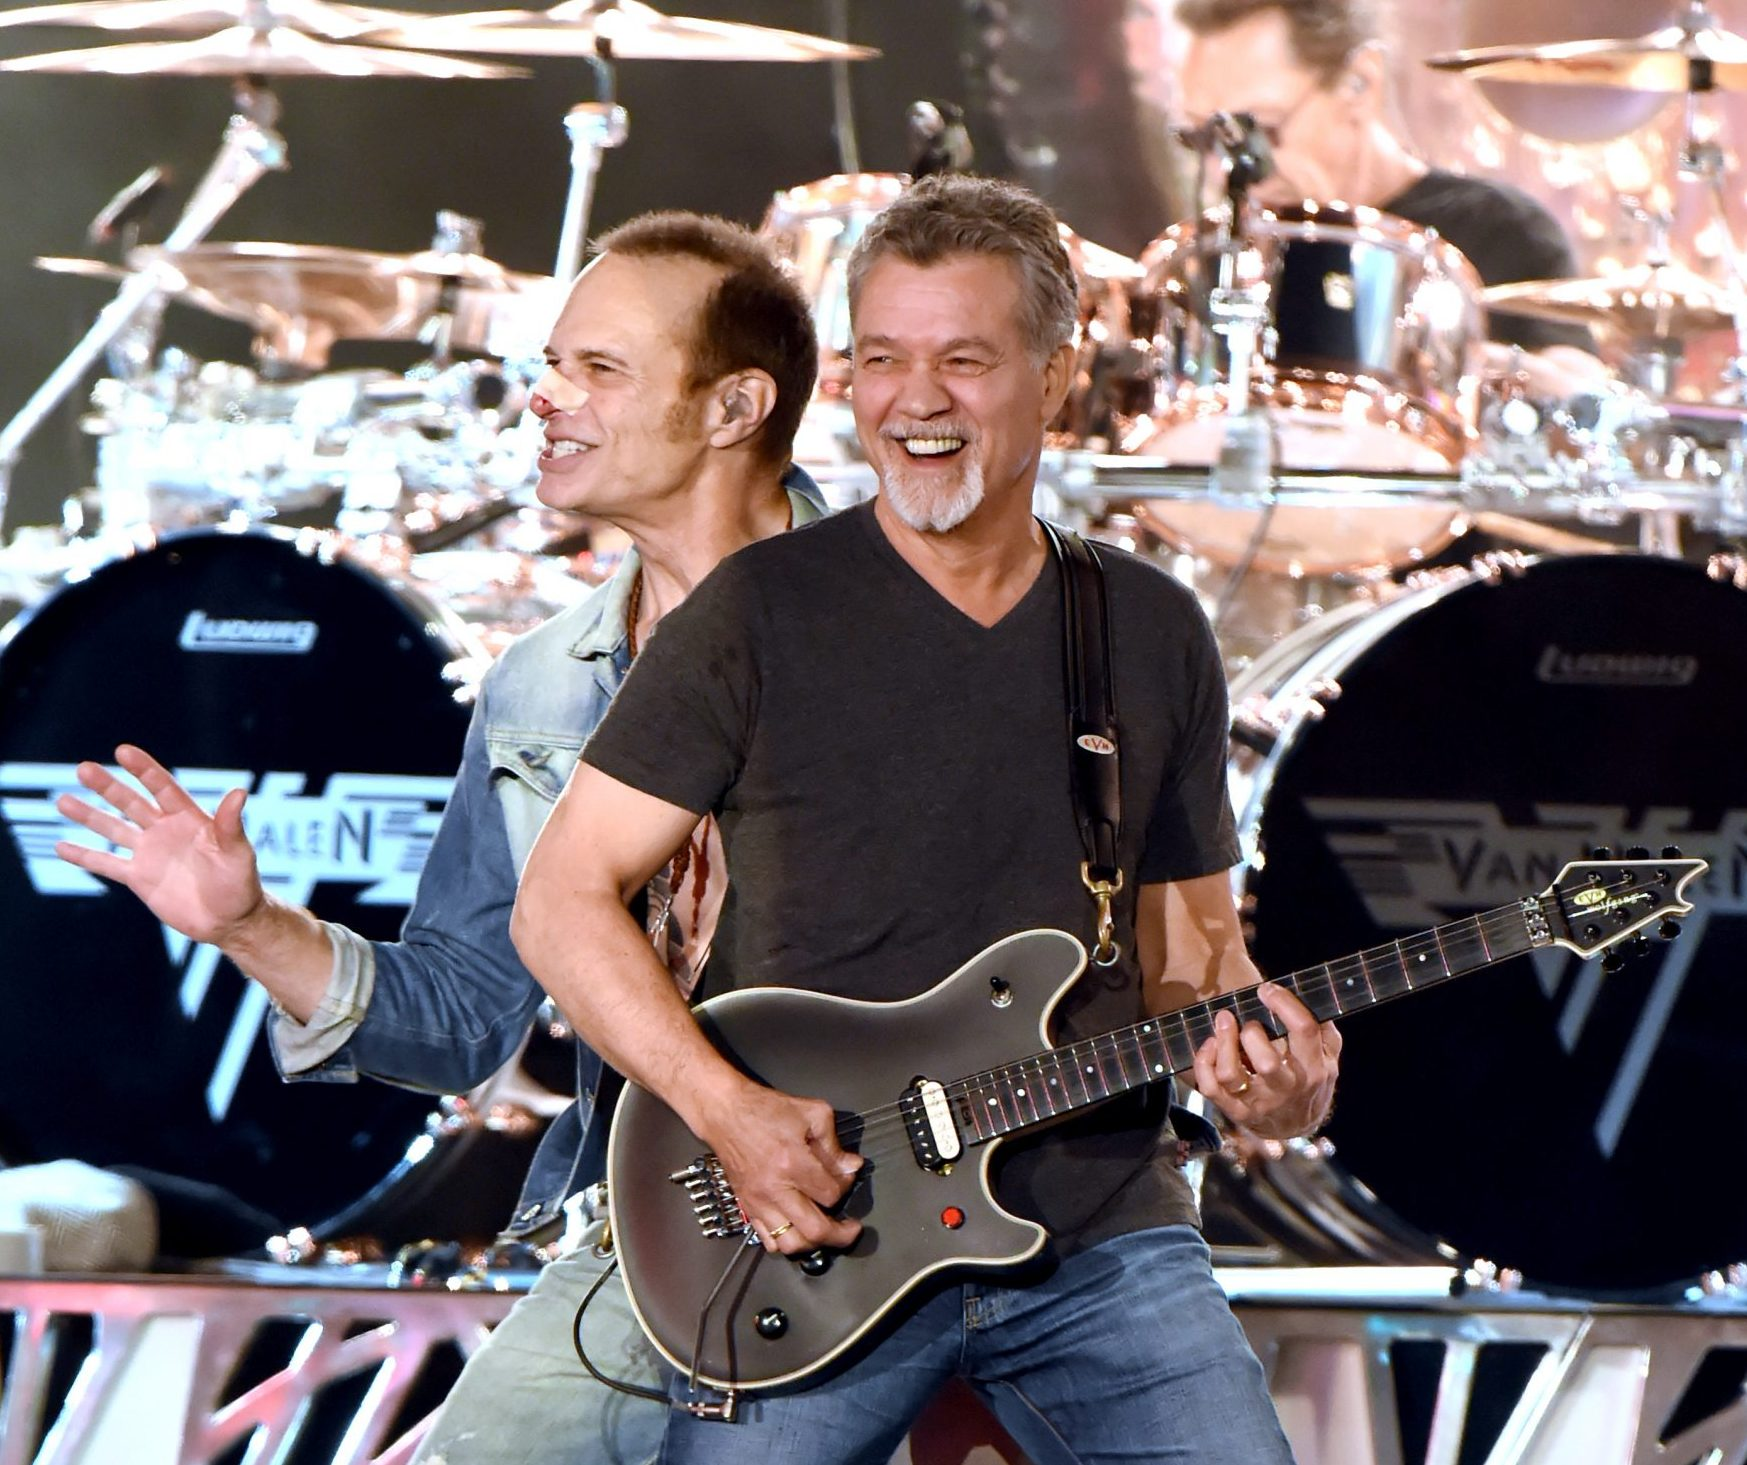 rs 190592 468194254 scaled e1604664421984 20 Facts About Rock Legends Van Halen That Will Make You Jump